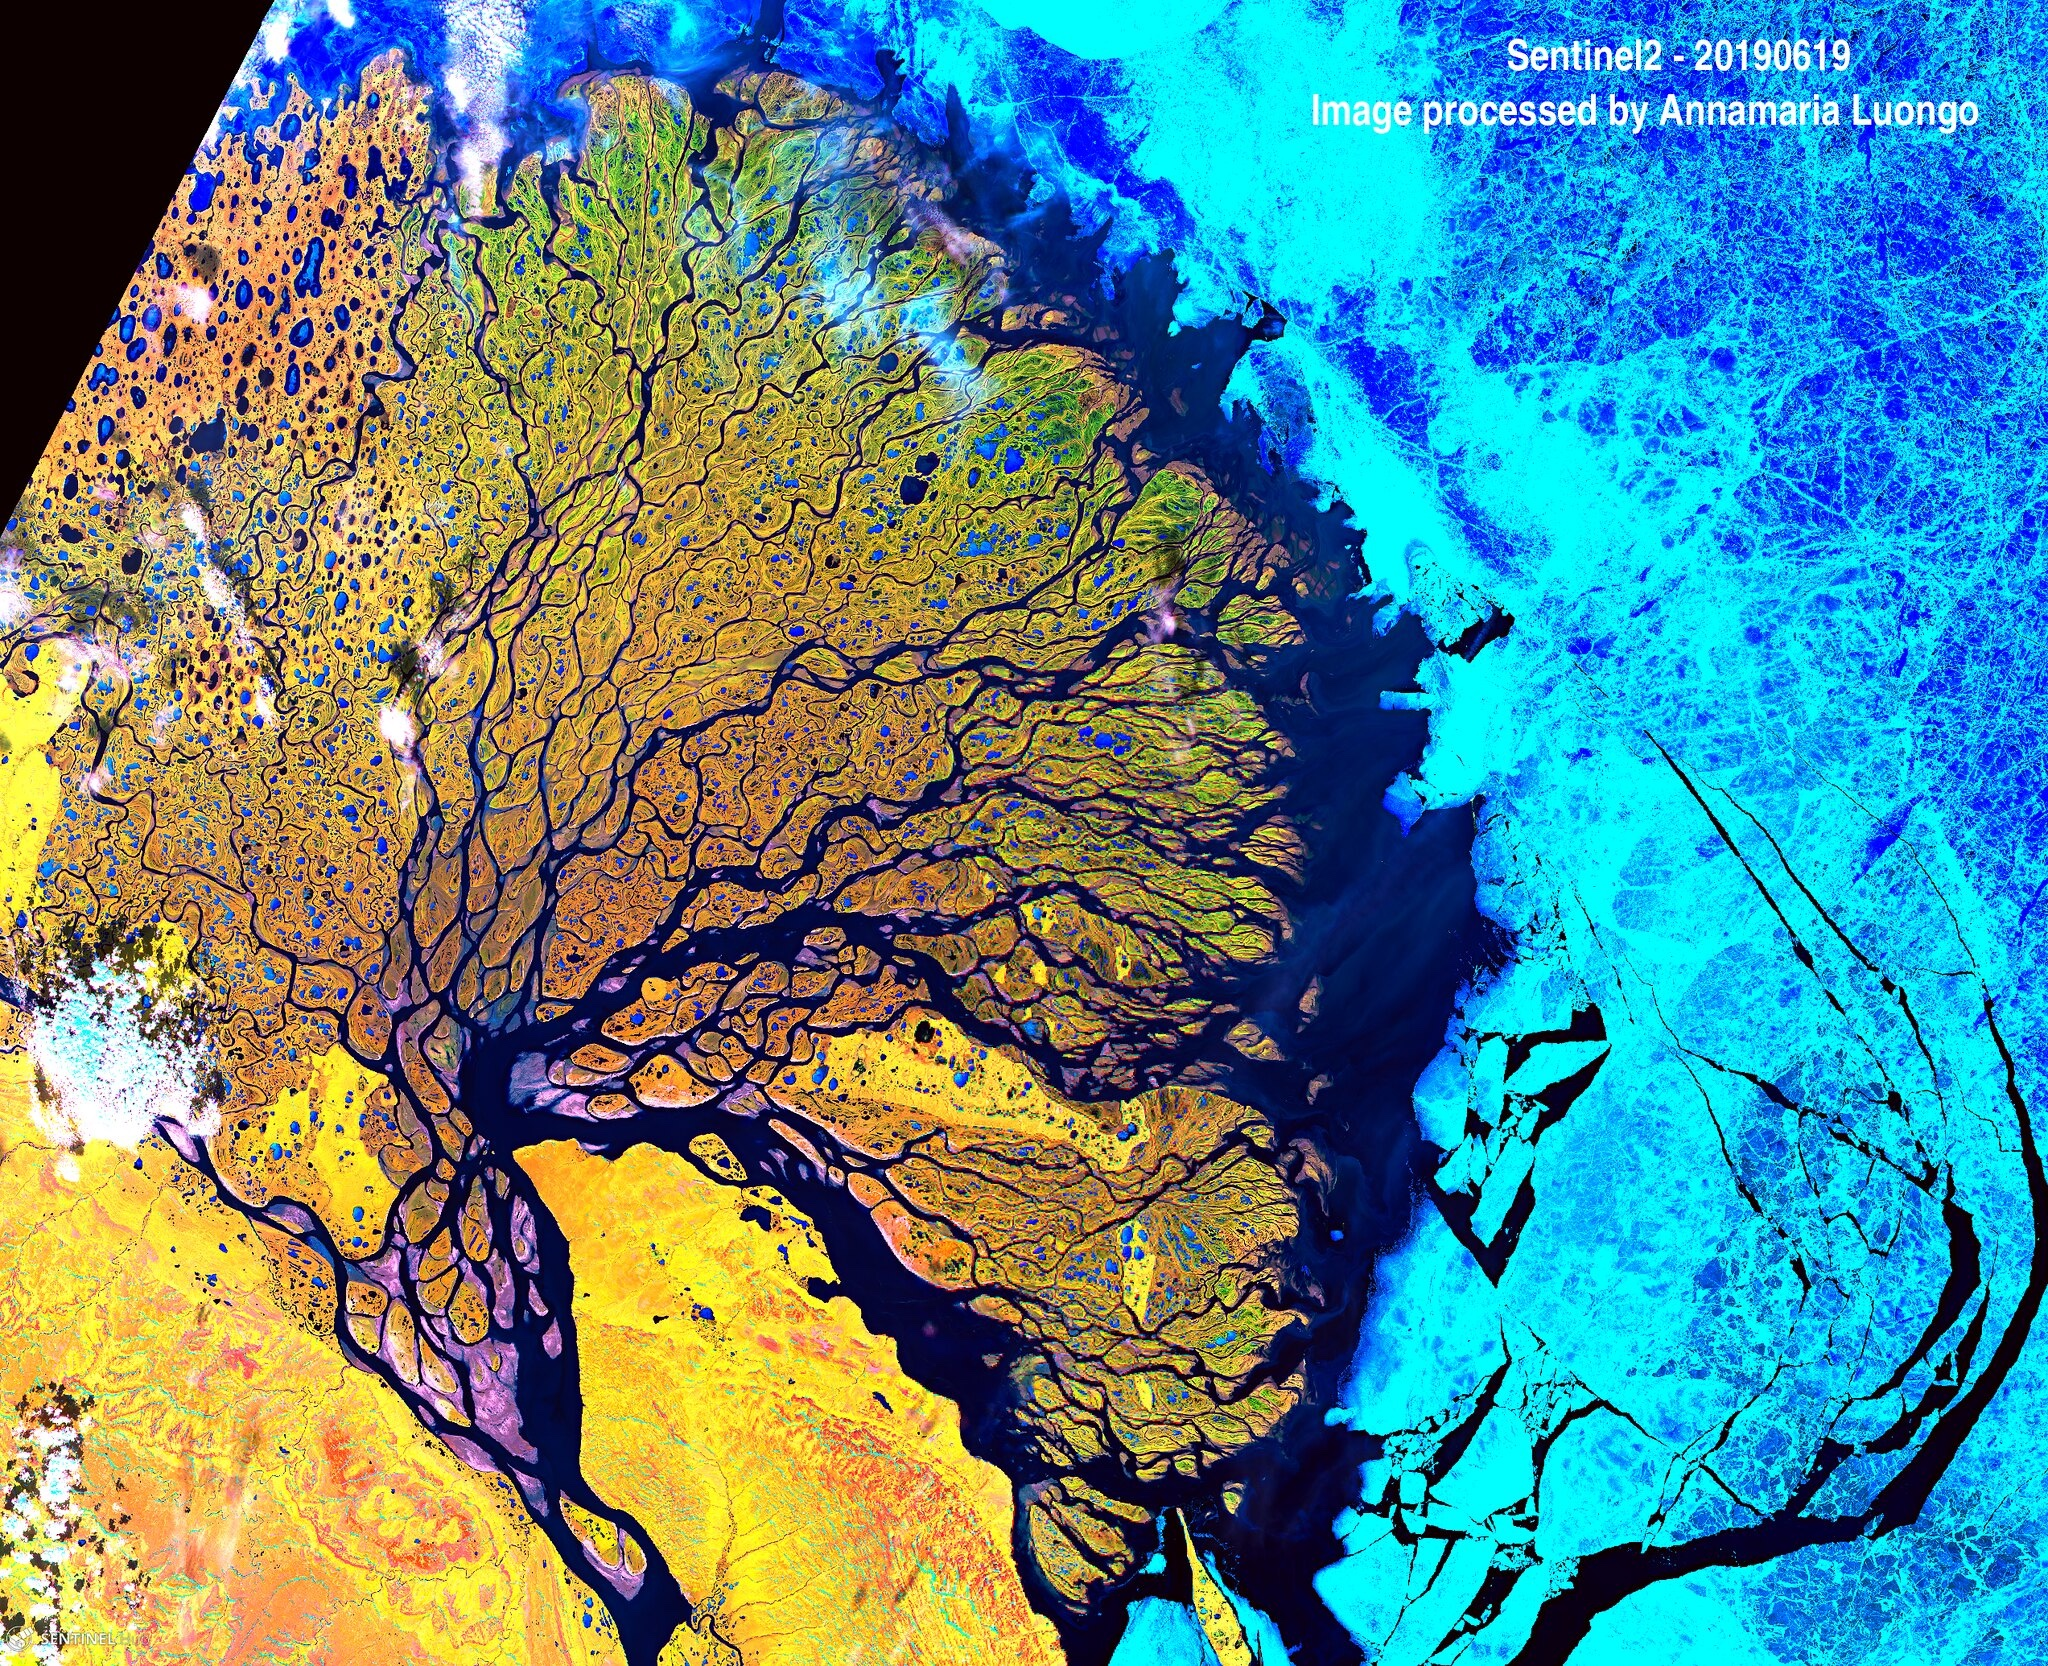 False Color Satellite Image of Lena Delta in Russia